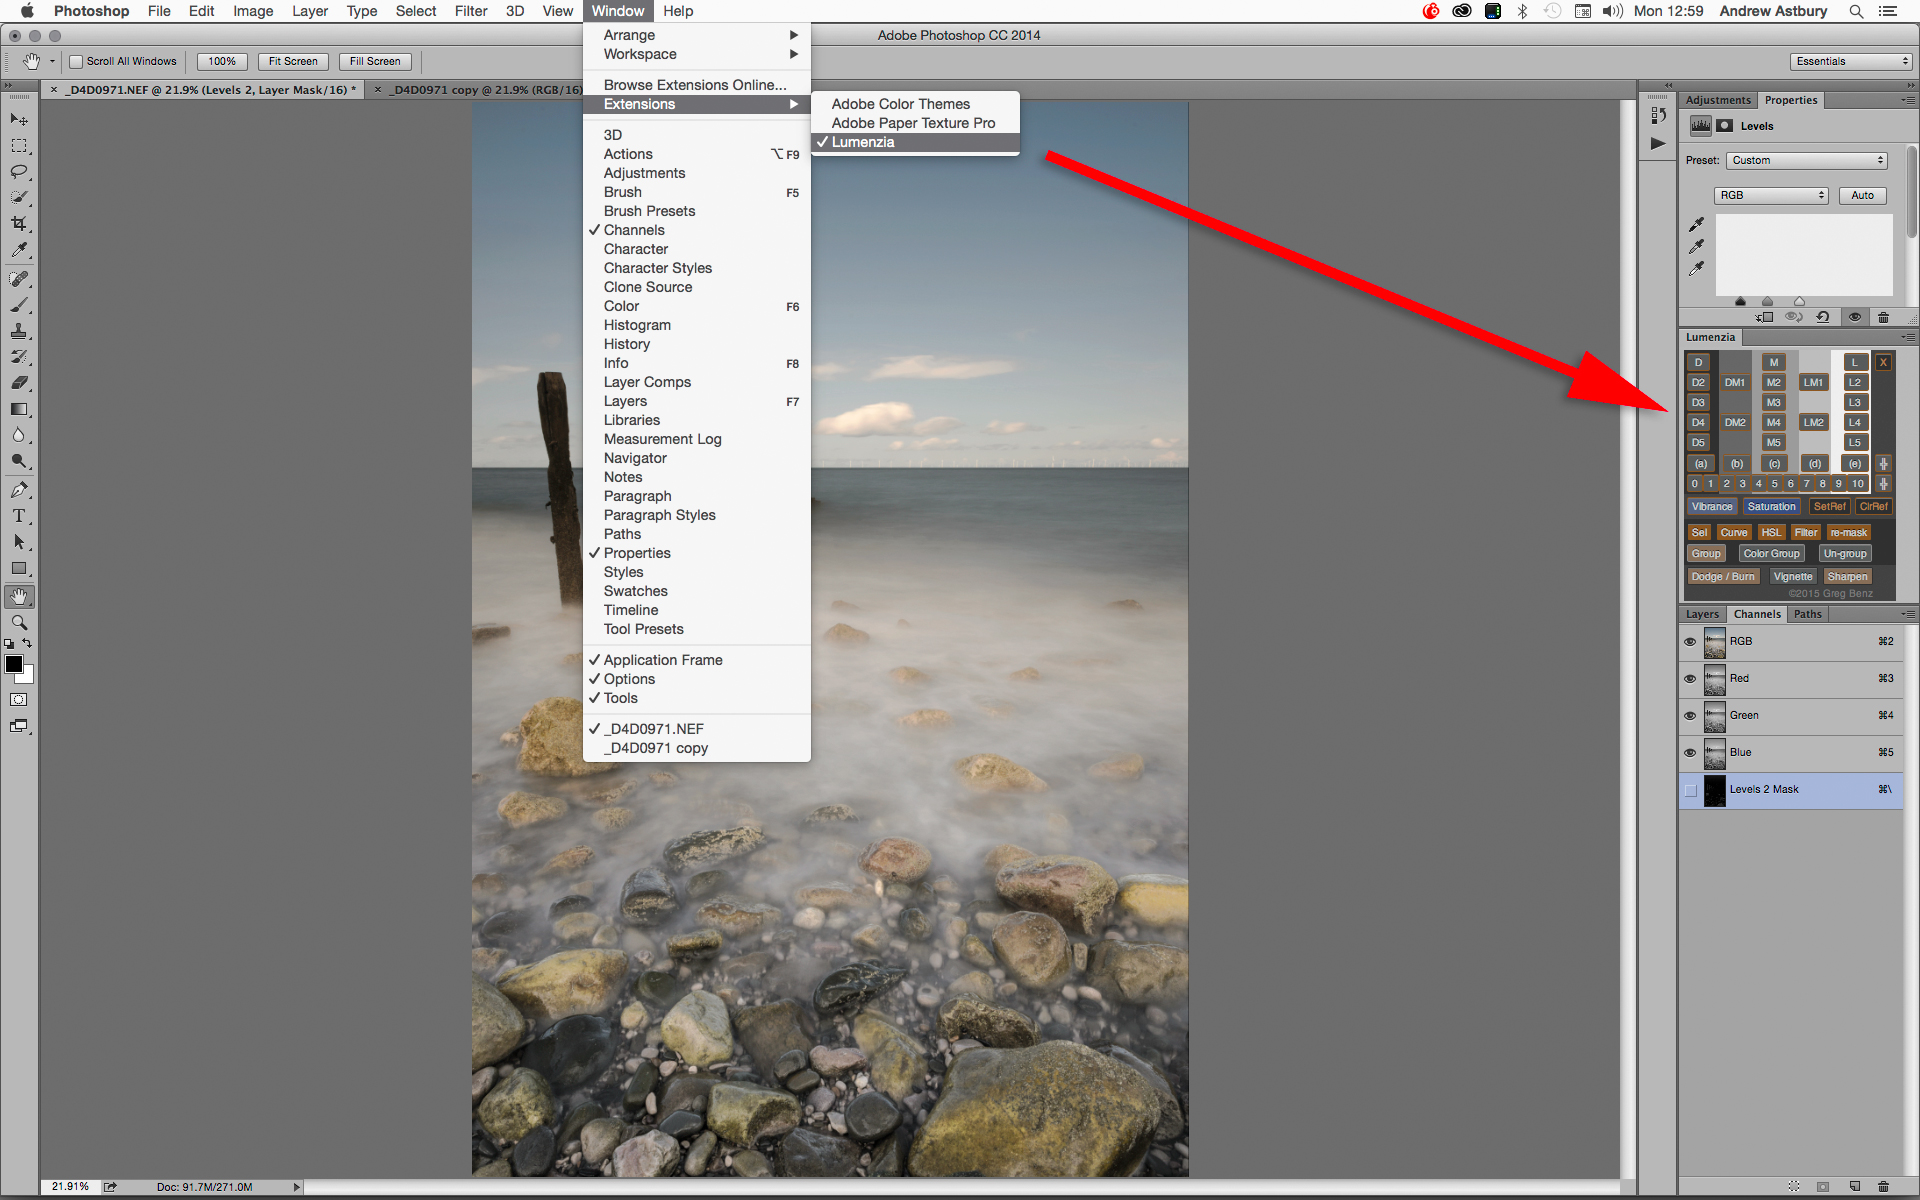 Photoshop plugins & add-ons Archives - Andy Astburys' Photography